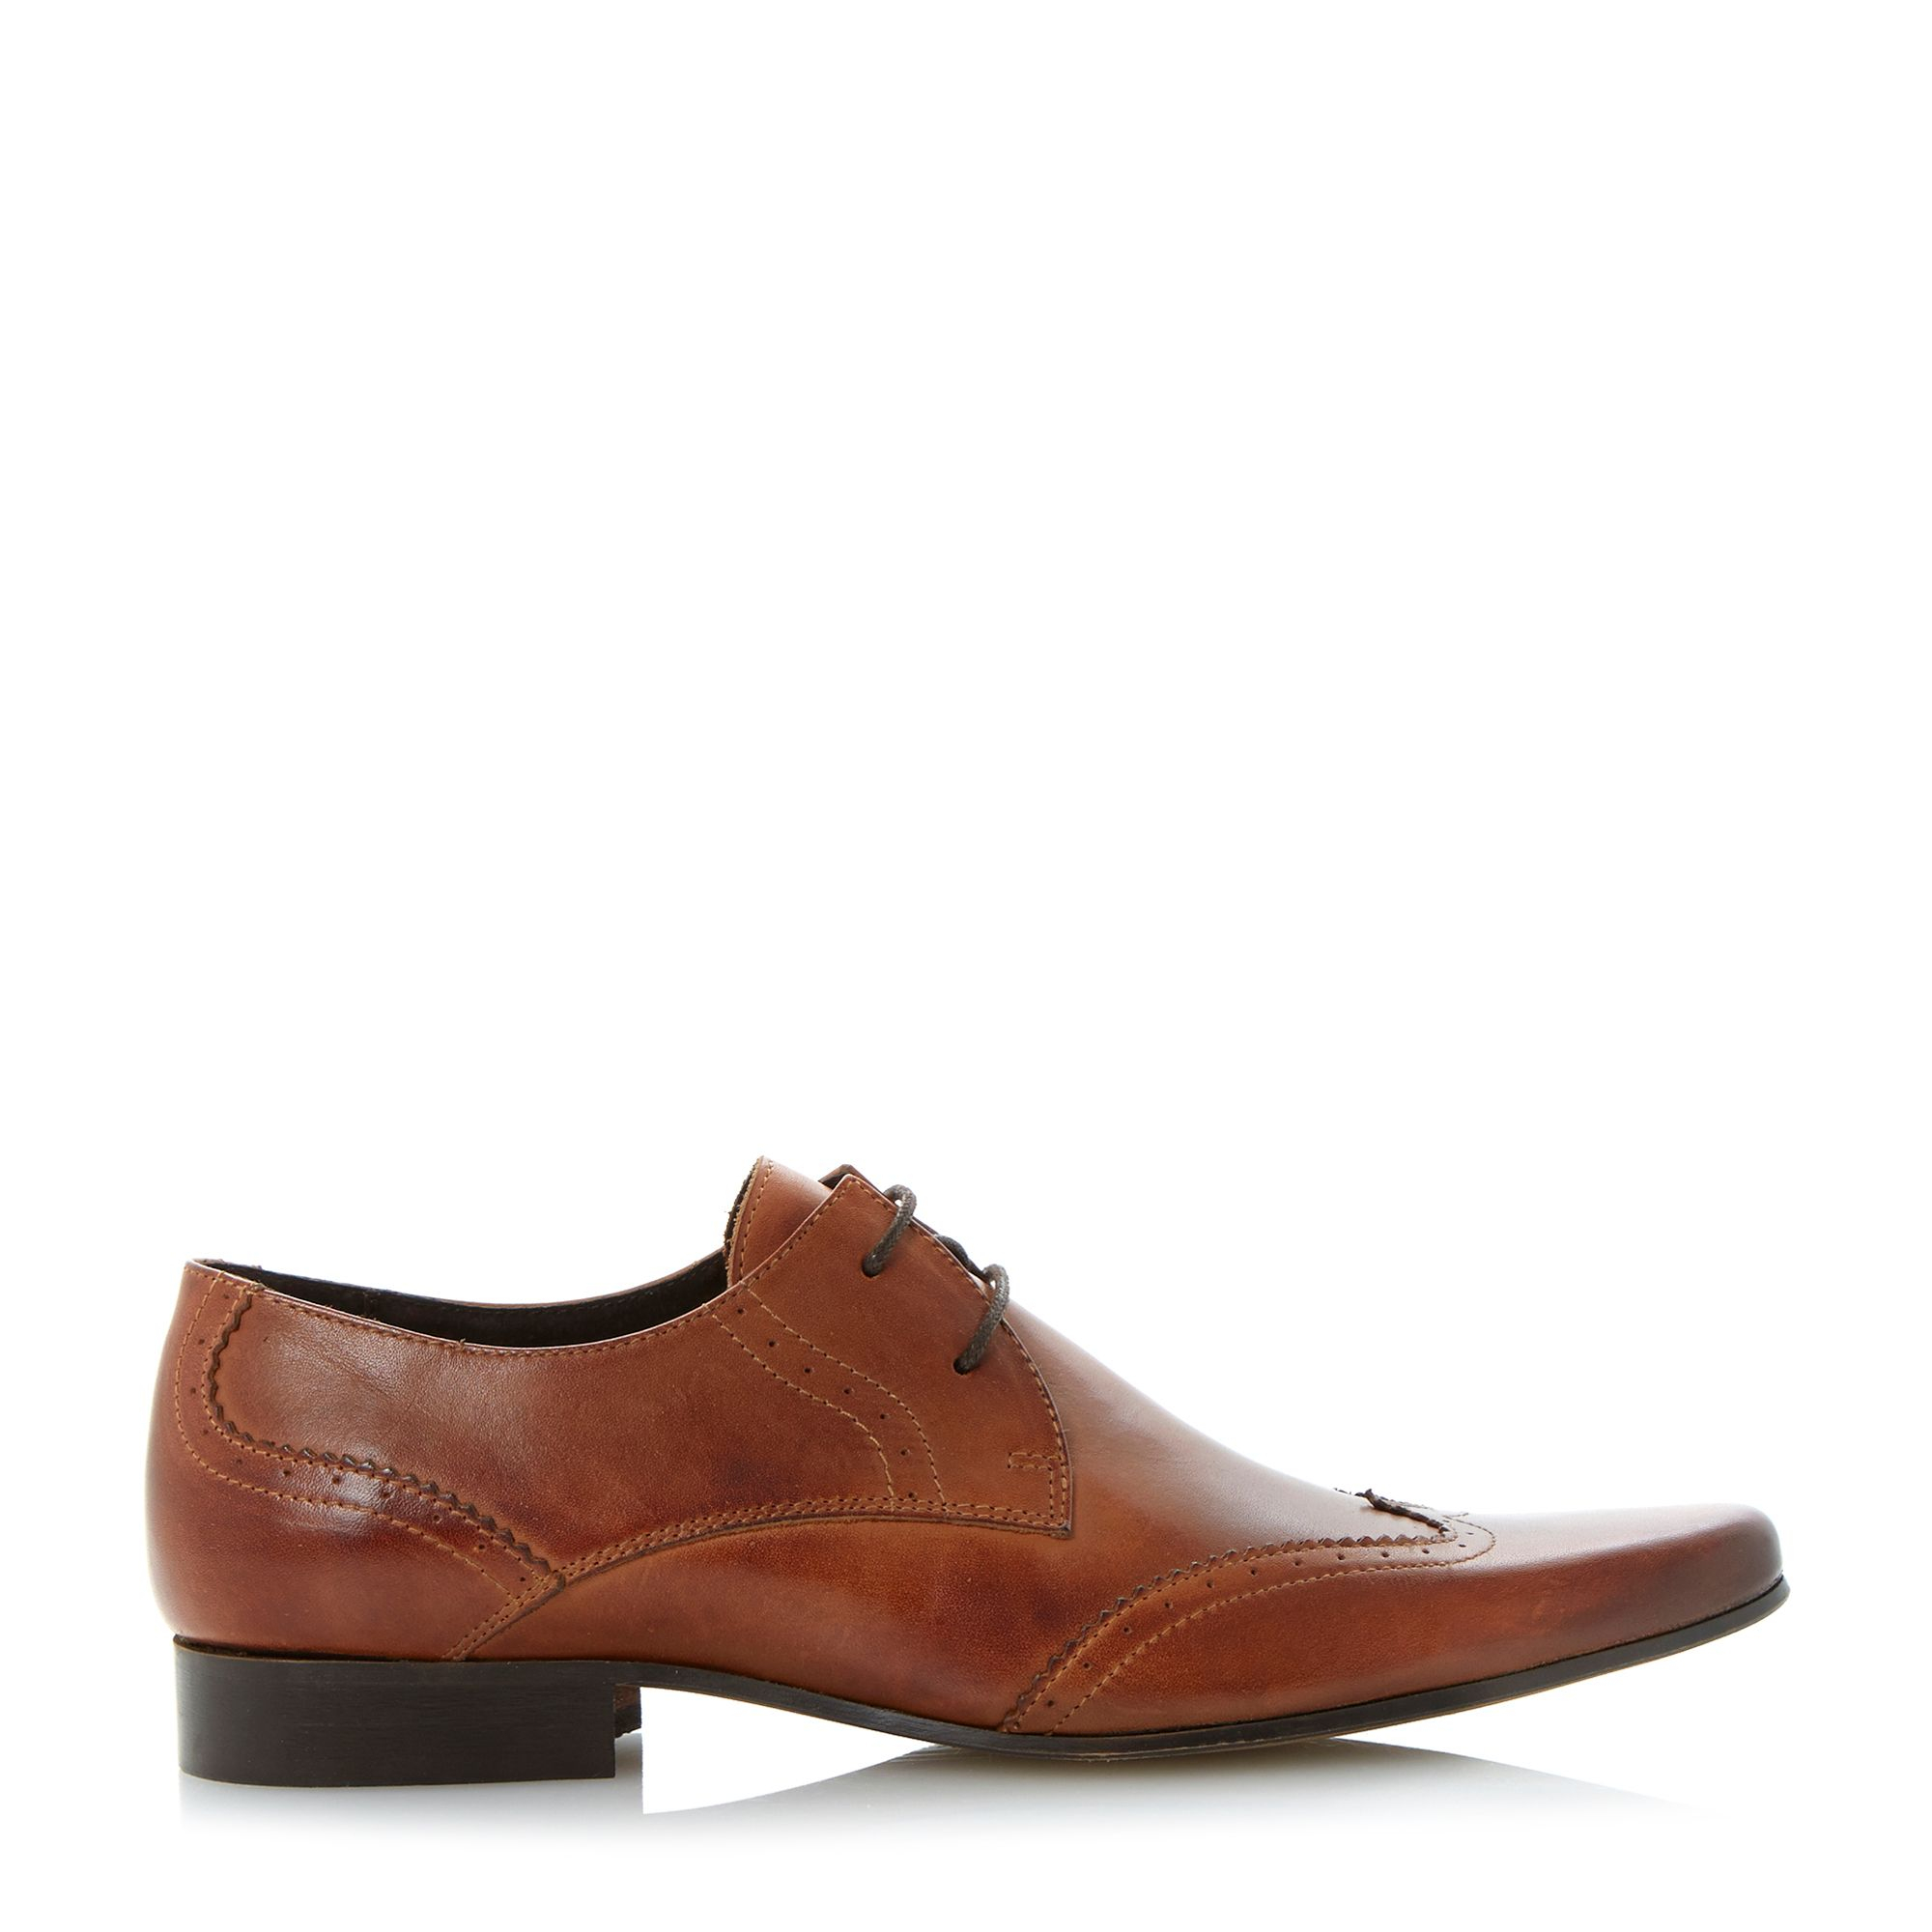 Clarks Gibson Shoes